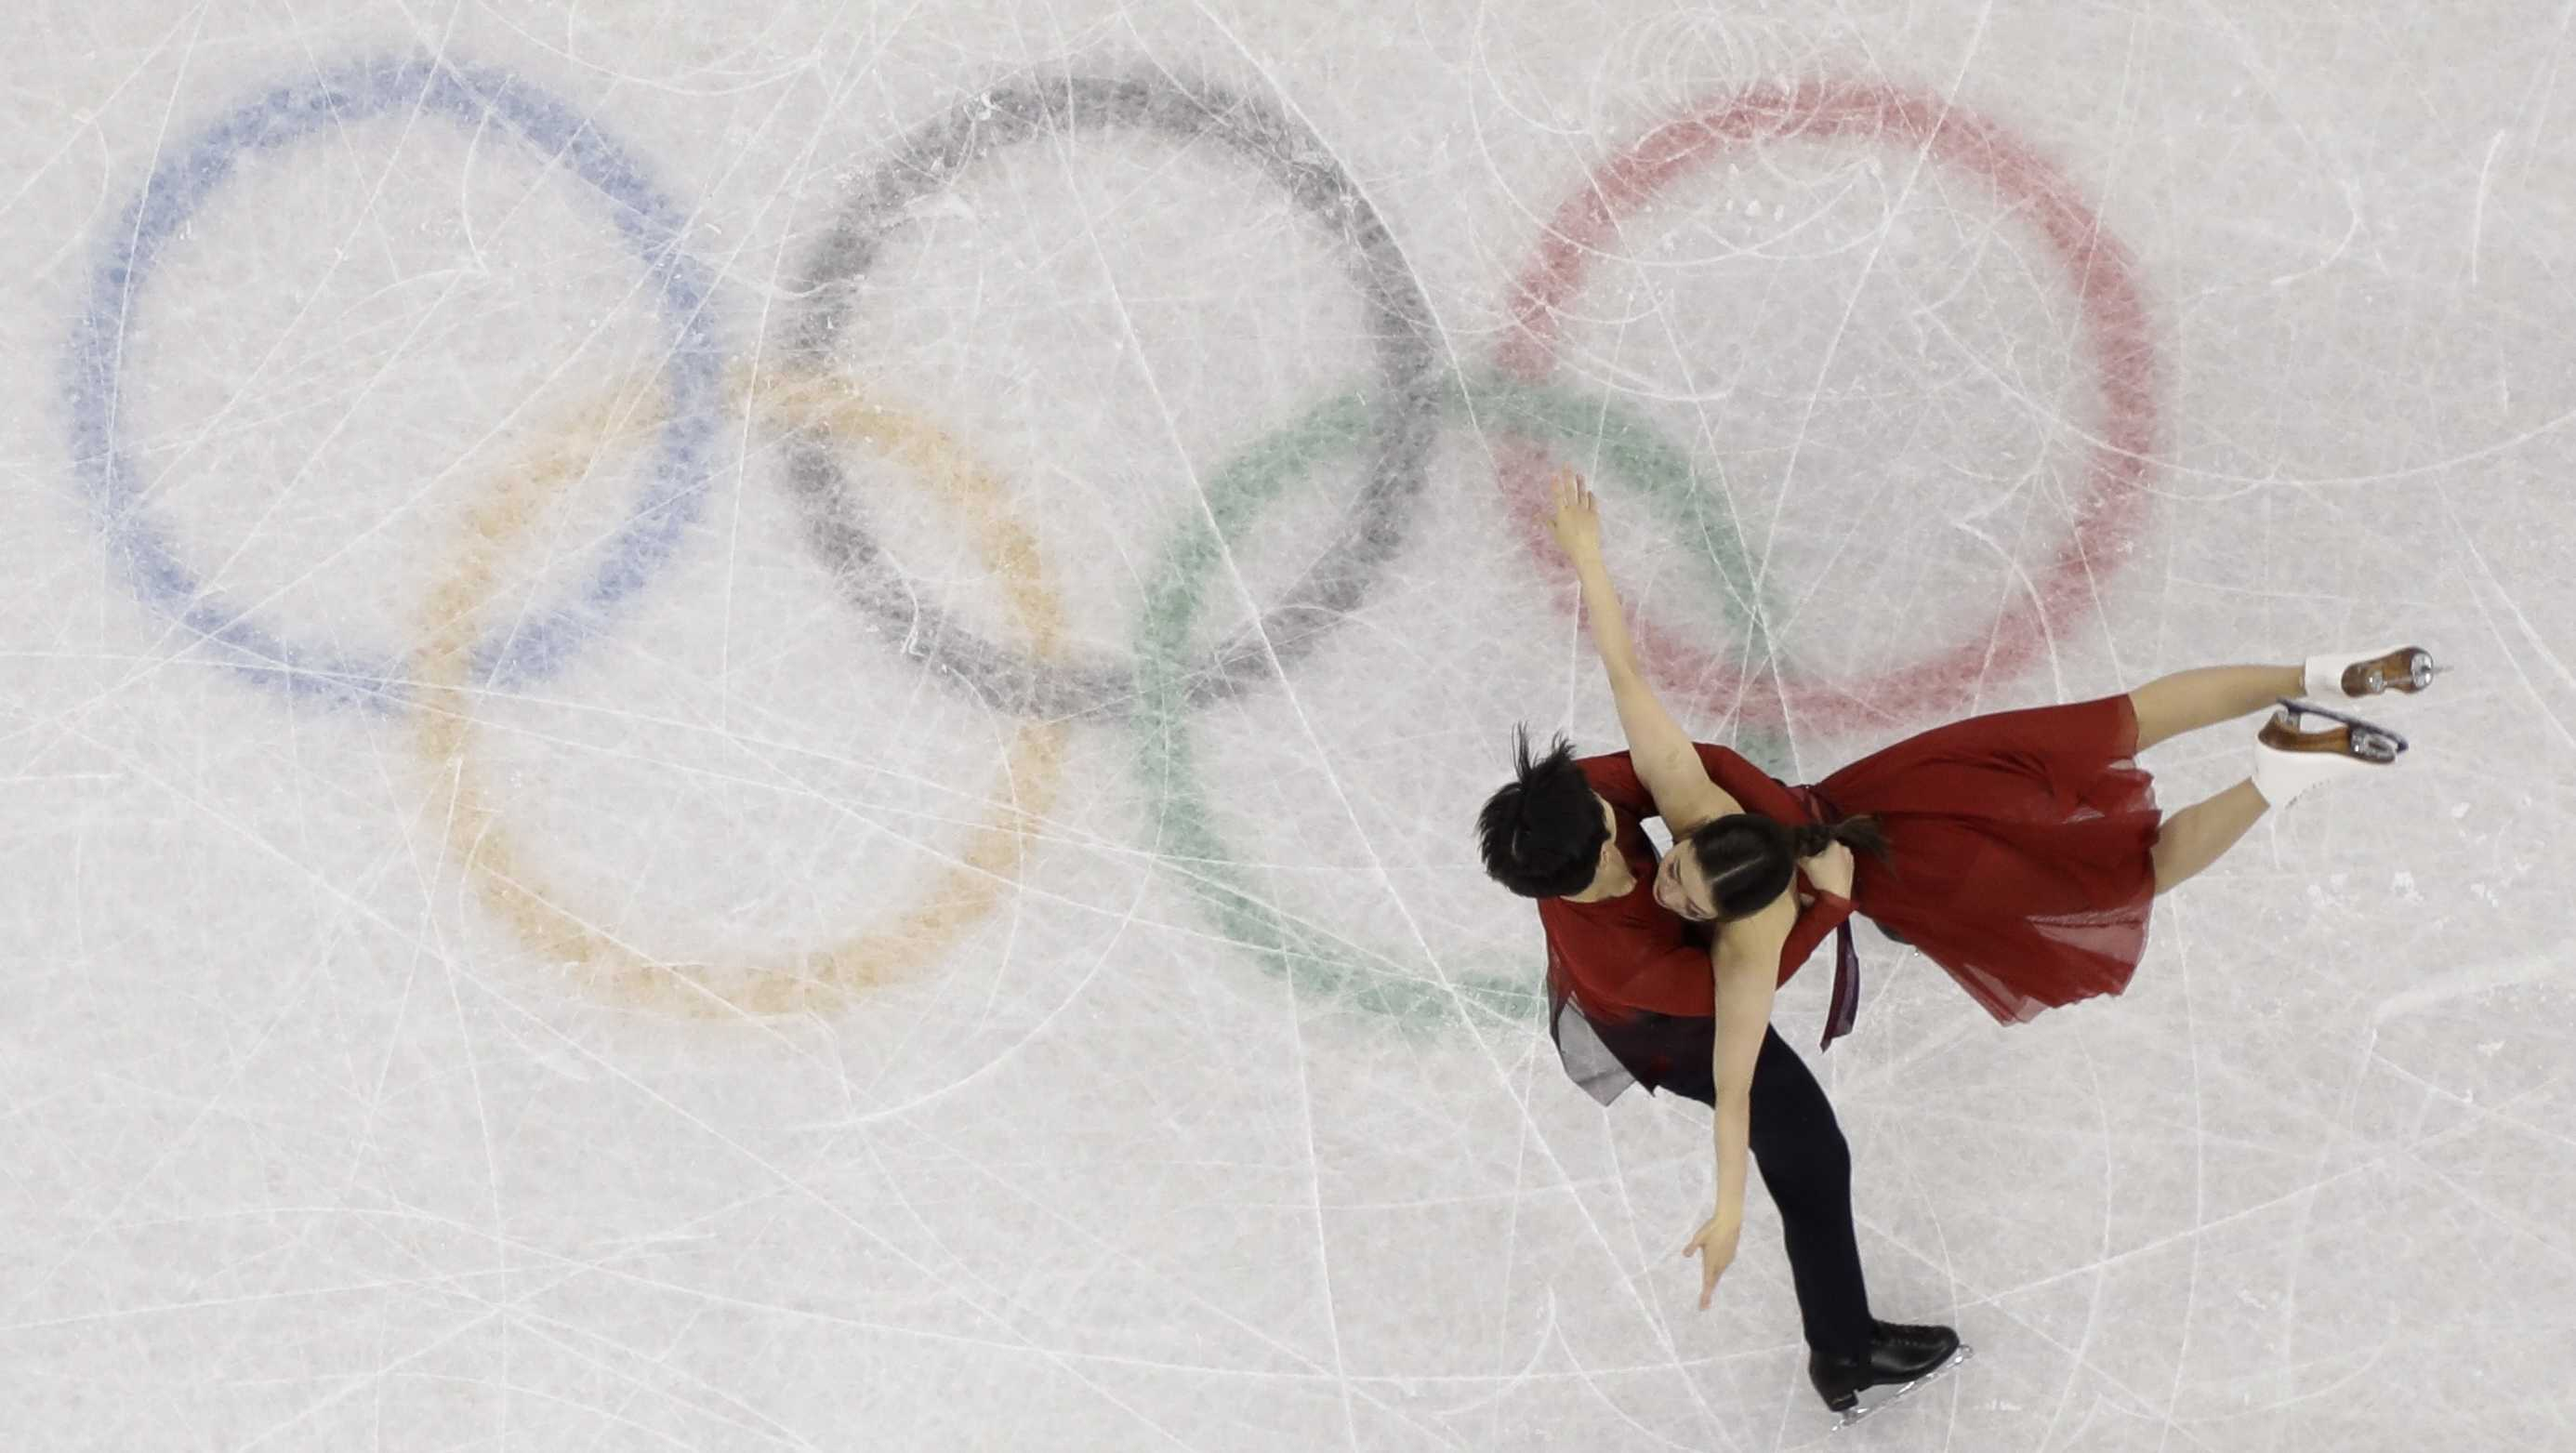 Maia Shibutani and Alex Shibutani, of the United States, perform in the ice dance free dance figure skating team event in the Gangneung Ice Arena at the 2018 Winter Olympics in Gangneung, South Korea, Monday, Feb. 12, 2018.